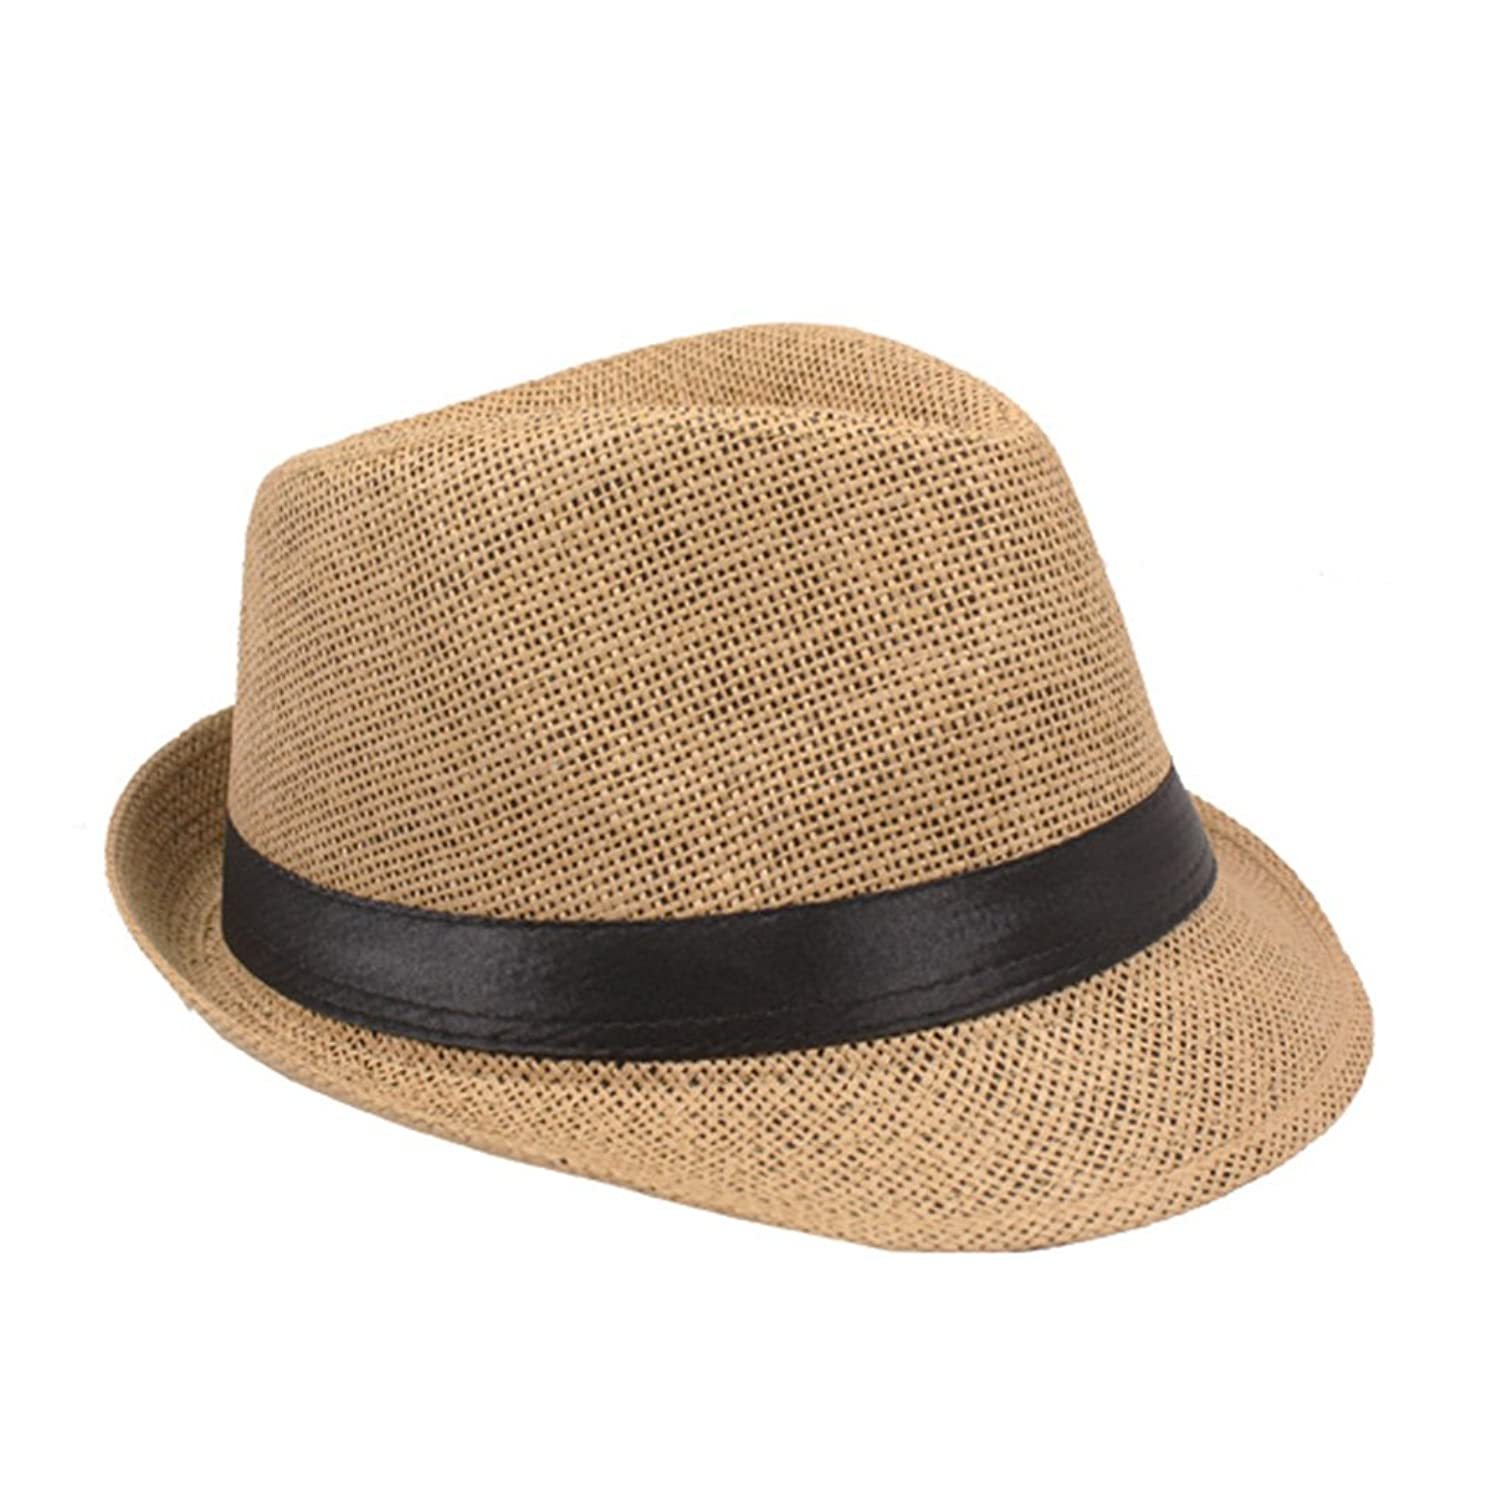 SILVERFEVER Silver Fever Stripped Panama Fedora Hat for Men Or Women (Tan Black Belt)